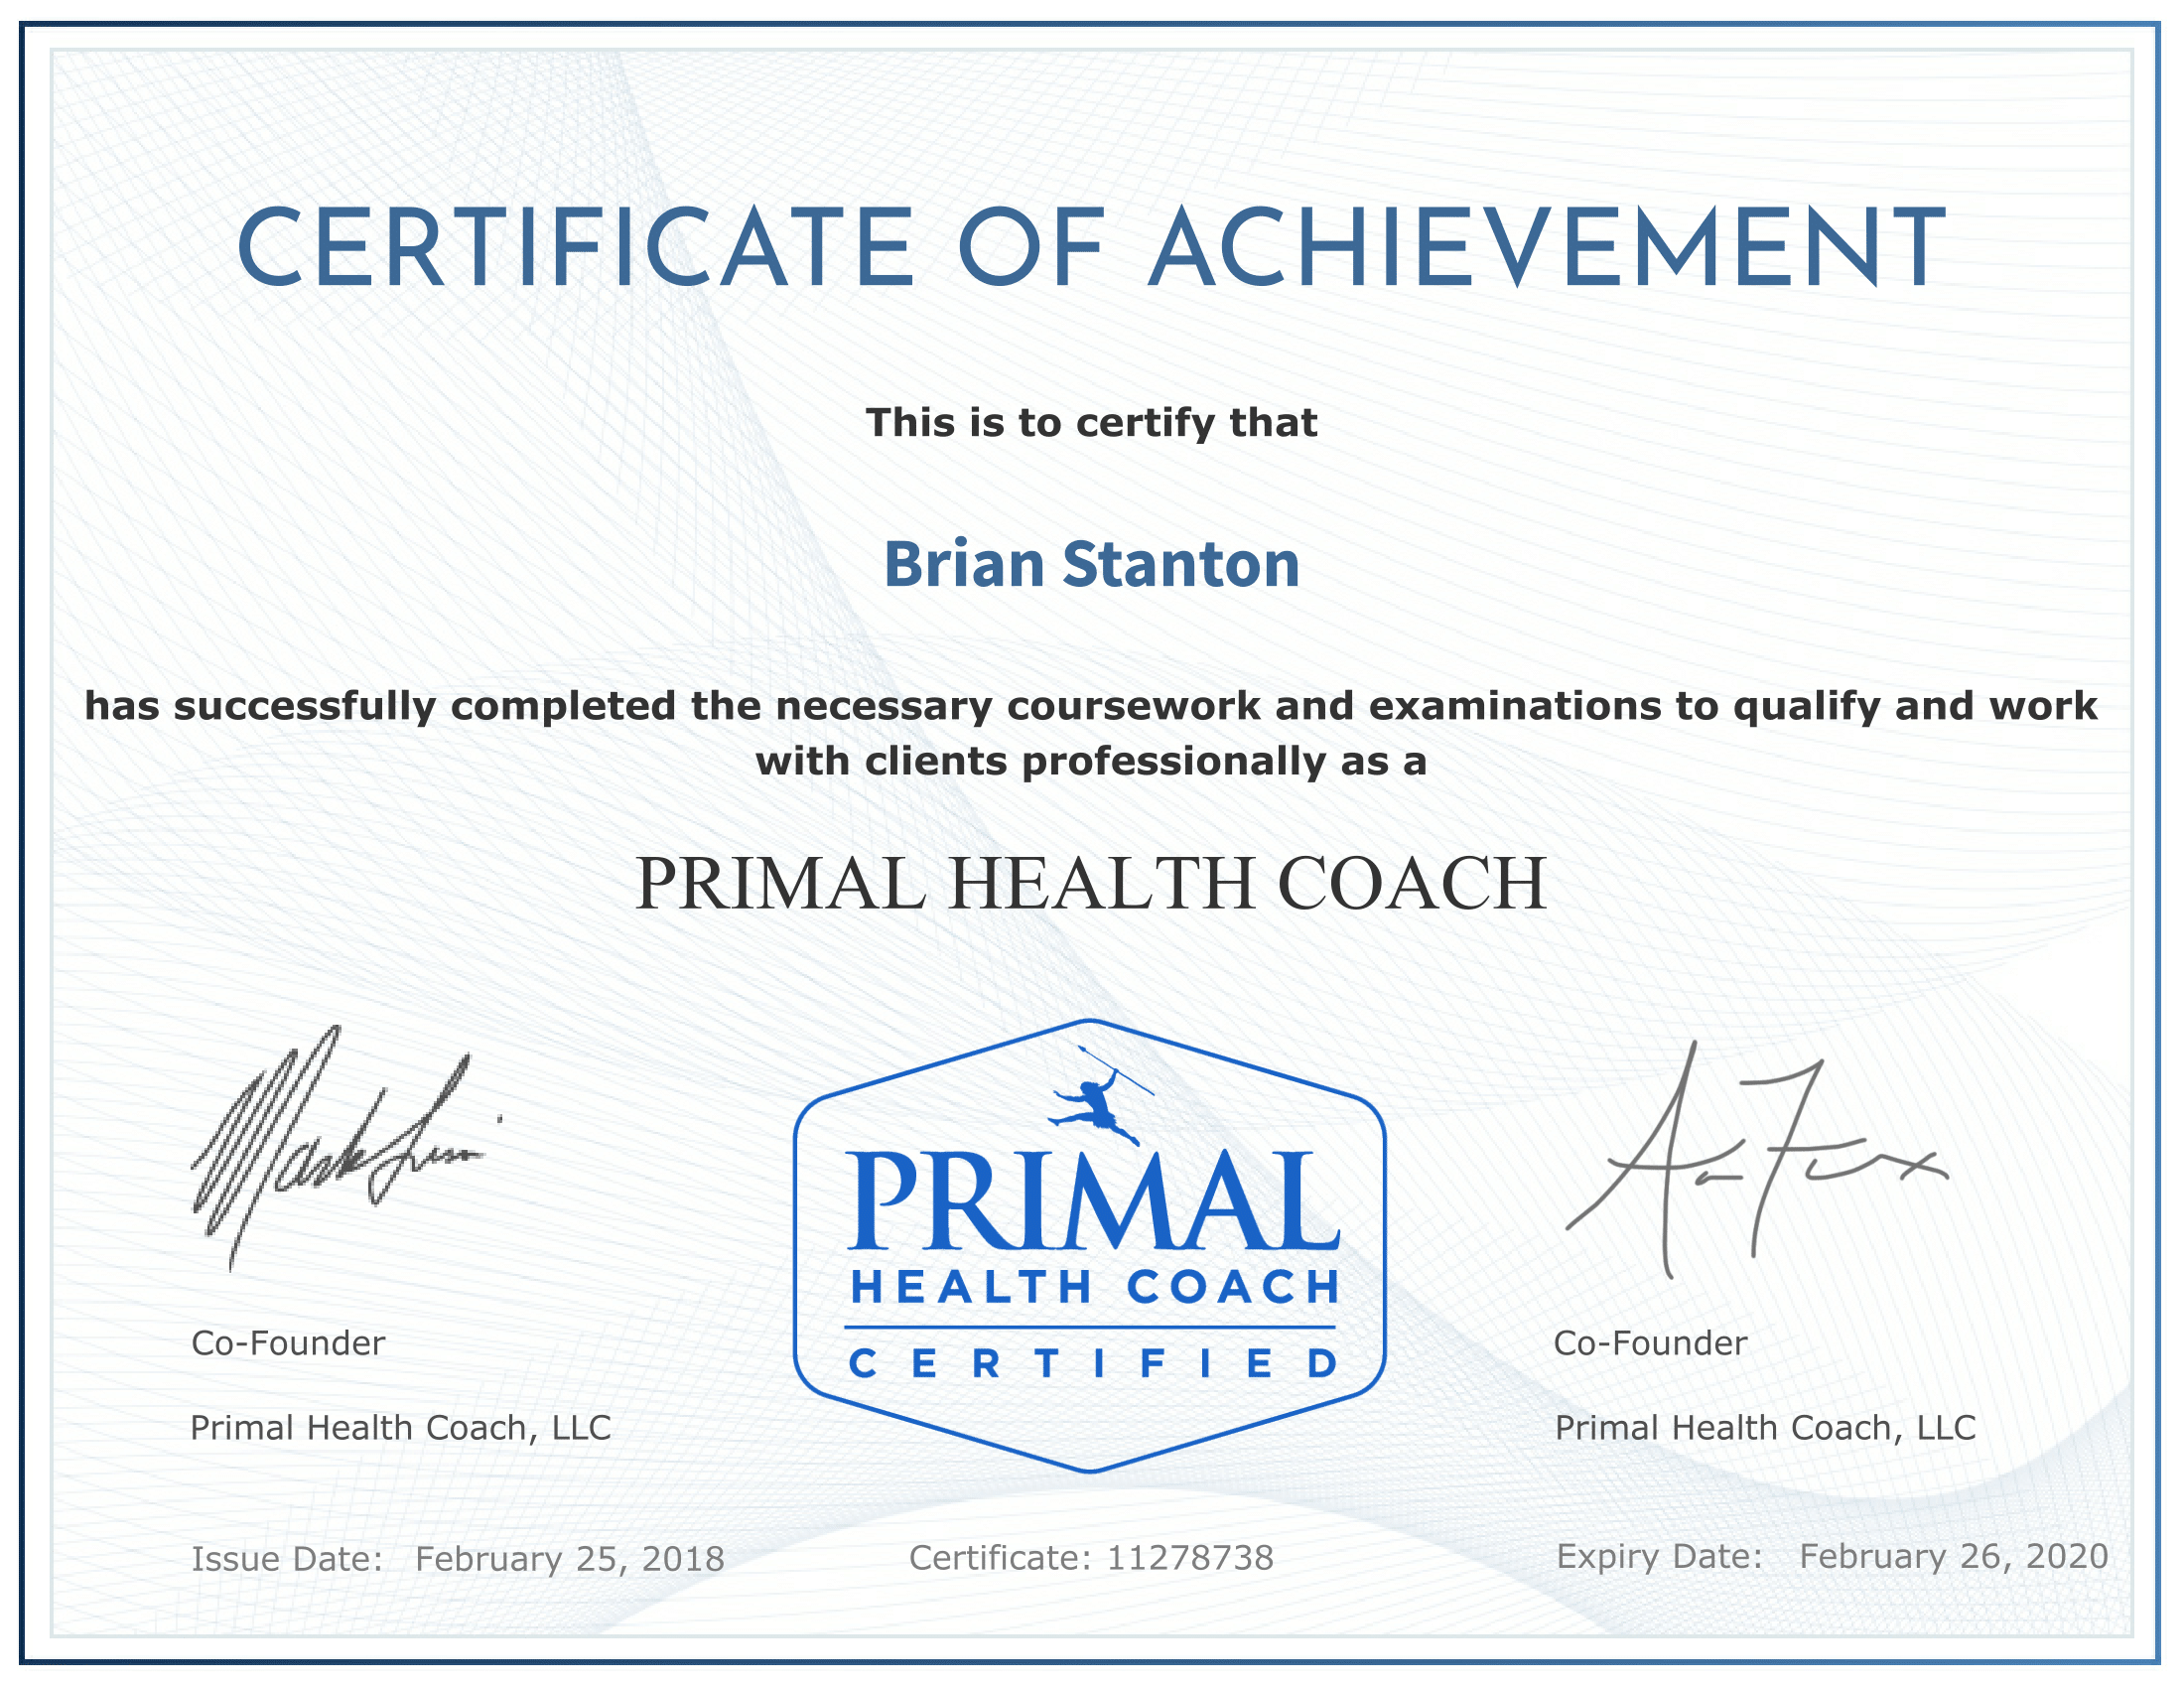 Health coaching primal sapien health coaching with brian stanton malvernweather Choice Image